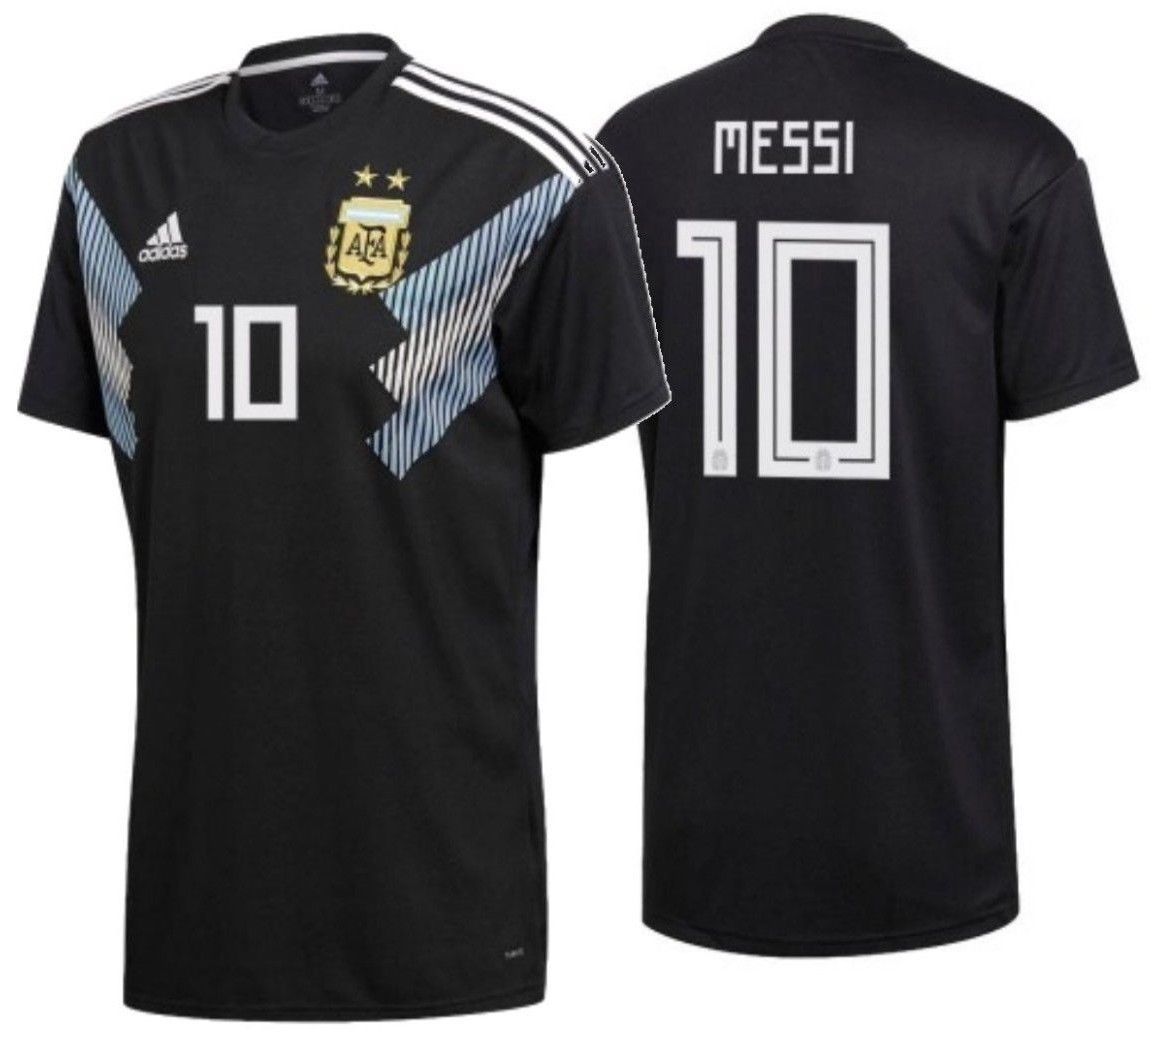 8f2856863 57. 57. Previous. ADIDAS LIONEL MESSI ARGENTINA AWAY JERSEY FIFA WORLD CUP  2018.